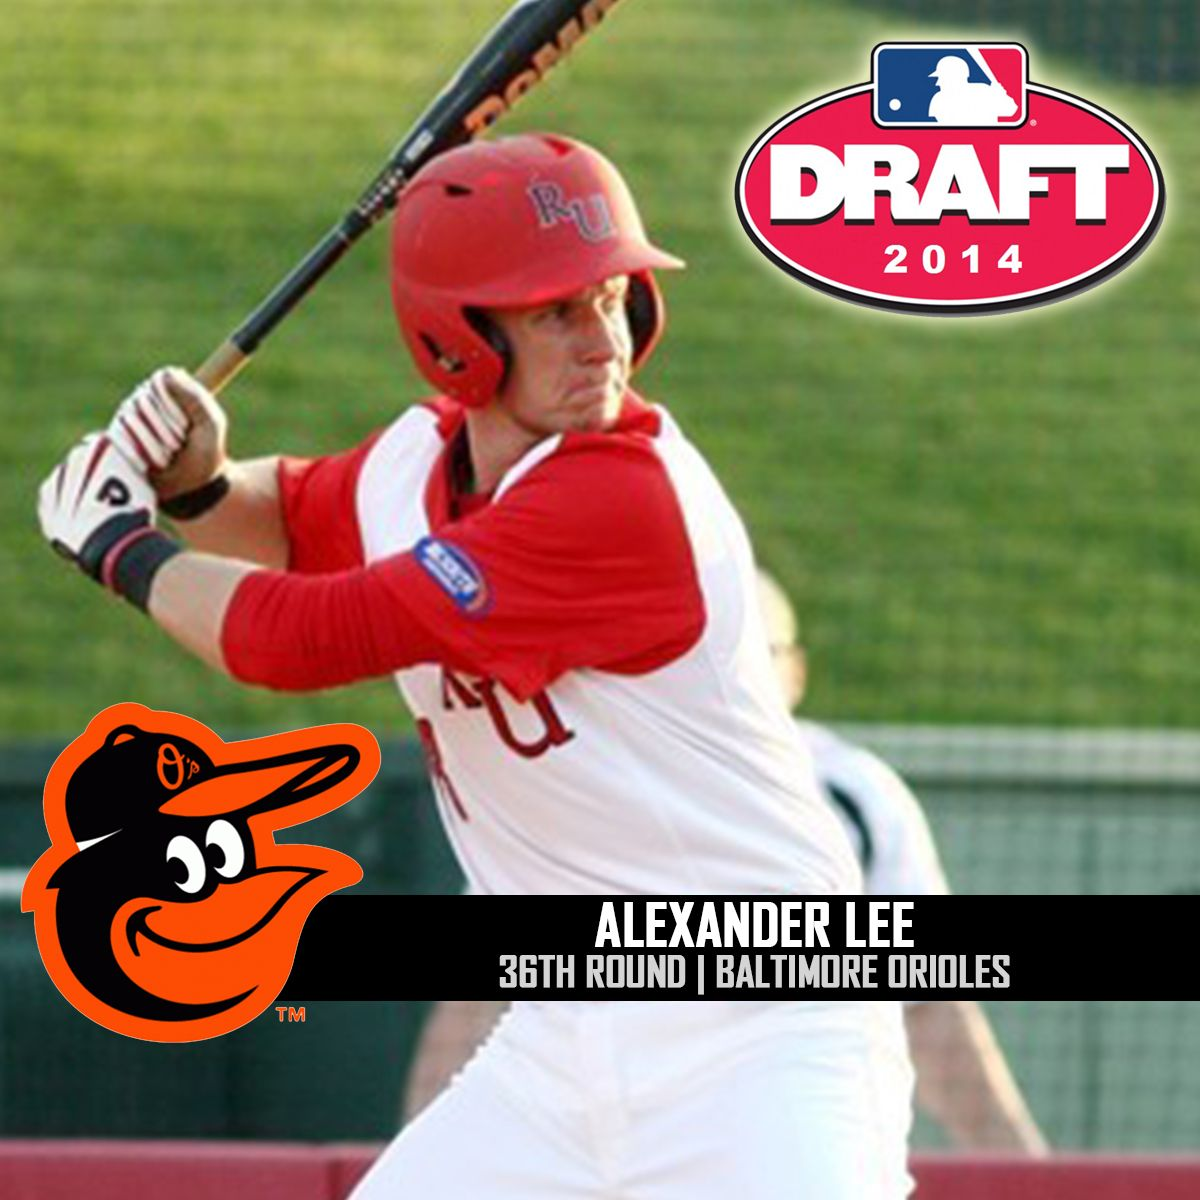 Alexander Lee drafted in 36th round by the Baltimore Orioles #RUalum #RadfordAthletics #RUhighlanders